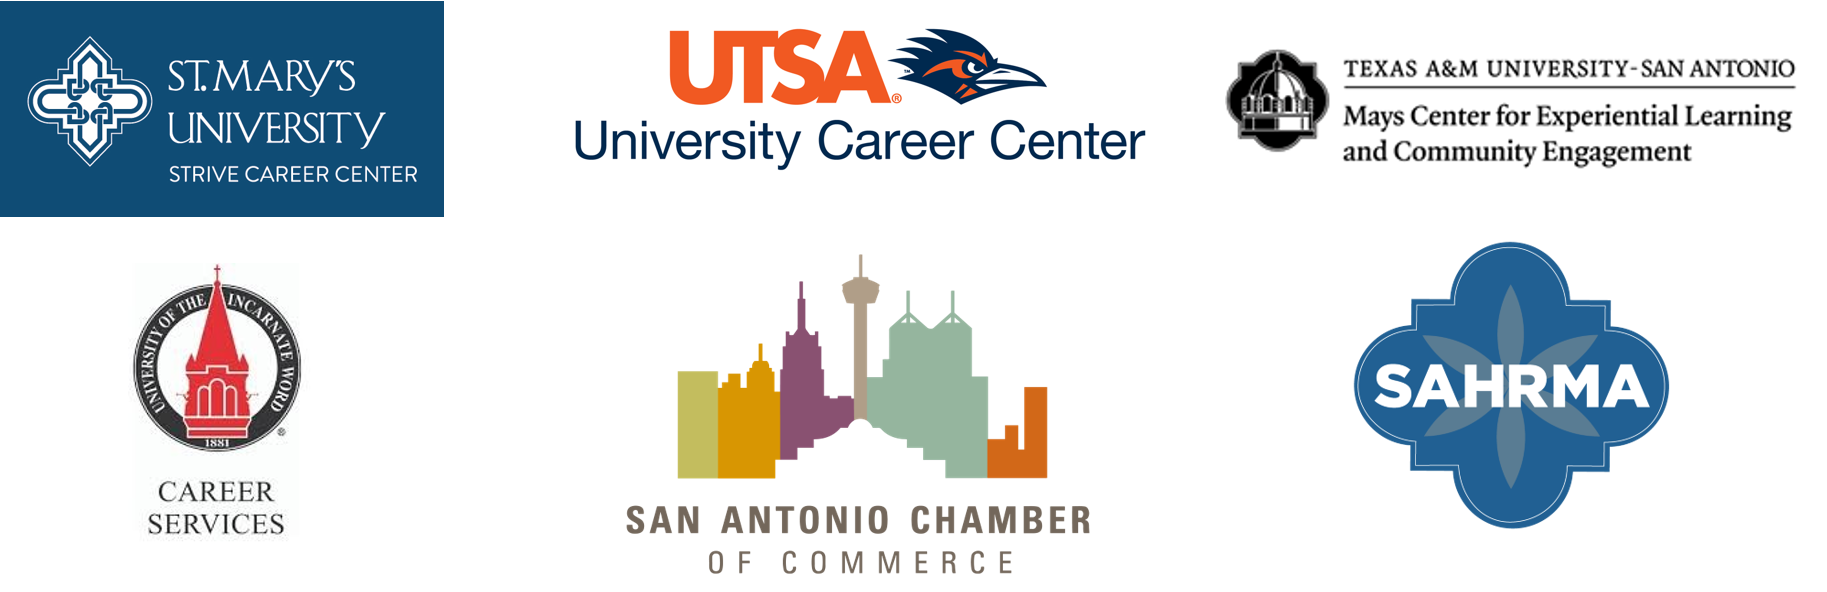 Tremendous San Antonio Total Internship Management Workshop Intern Bridge Home Interior And Landscaping Ponolsignezvosmurscom